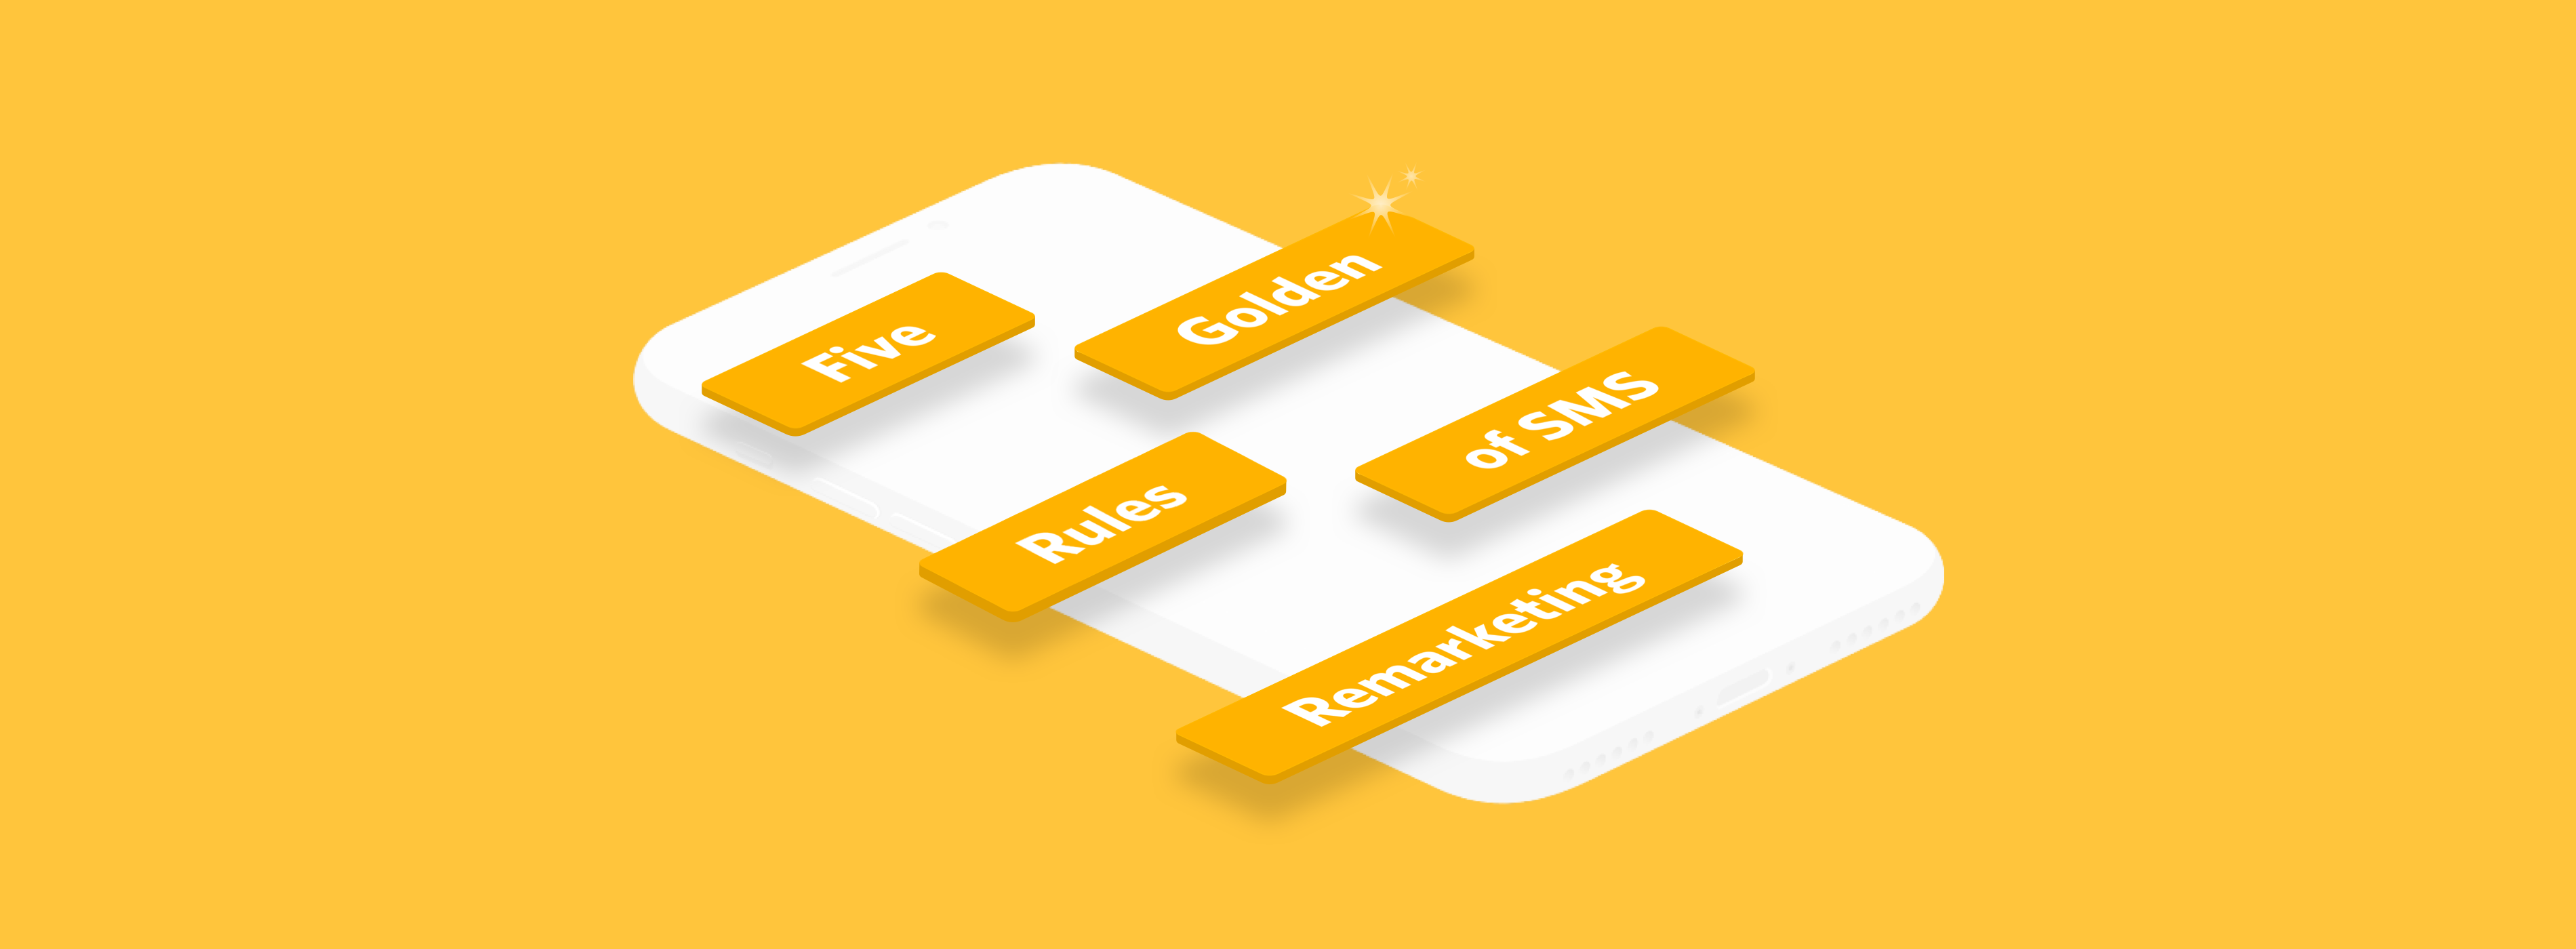 Five Golden Rules for SMS Marketing